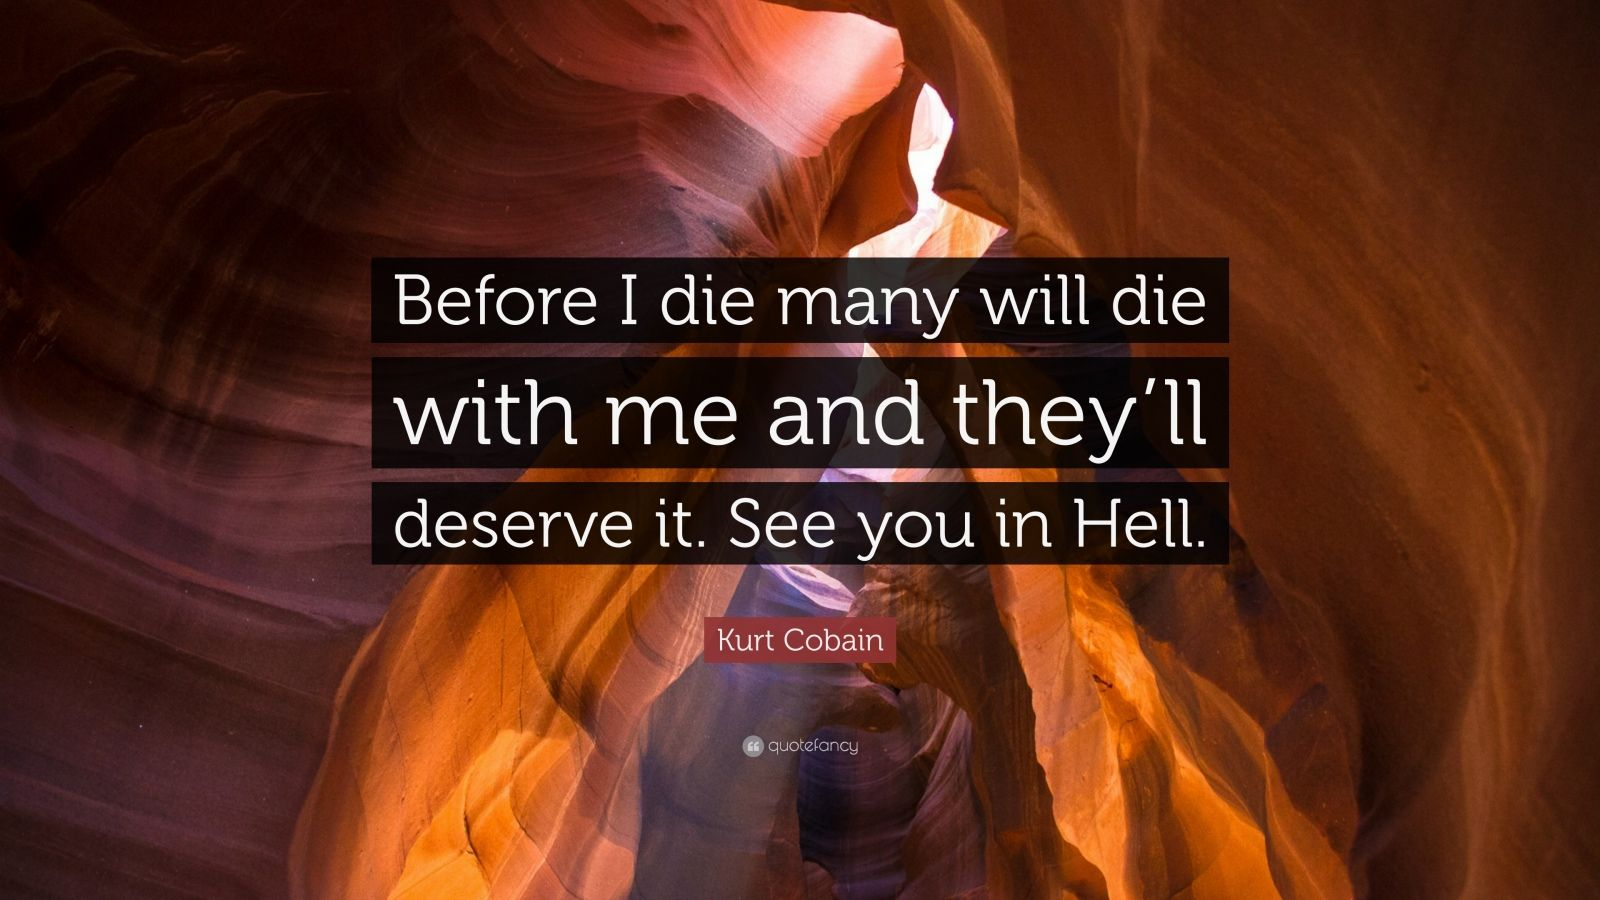 """Kurt Cobain Quote: """"Before I die many will die with me and they'll deserve it. See you in Hell."""""""